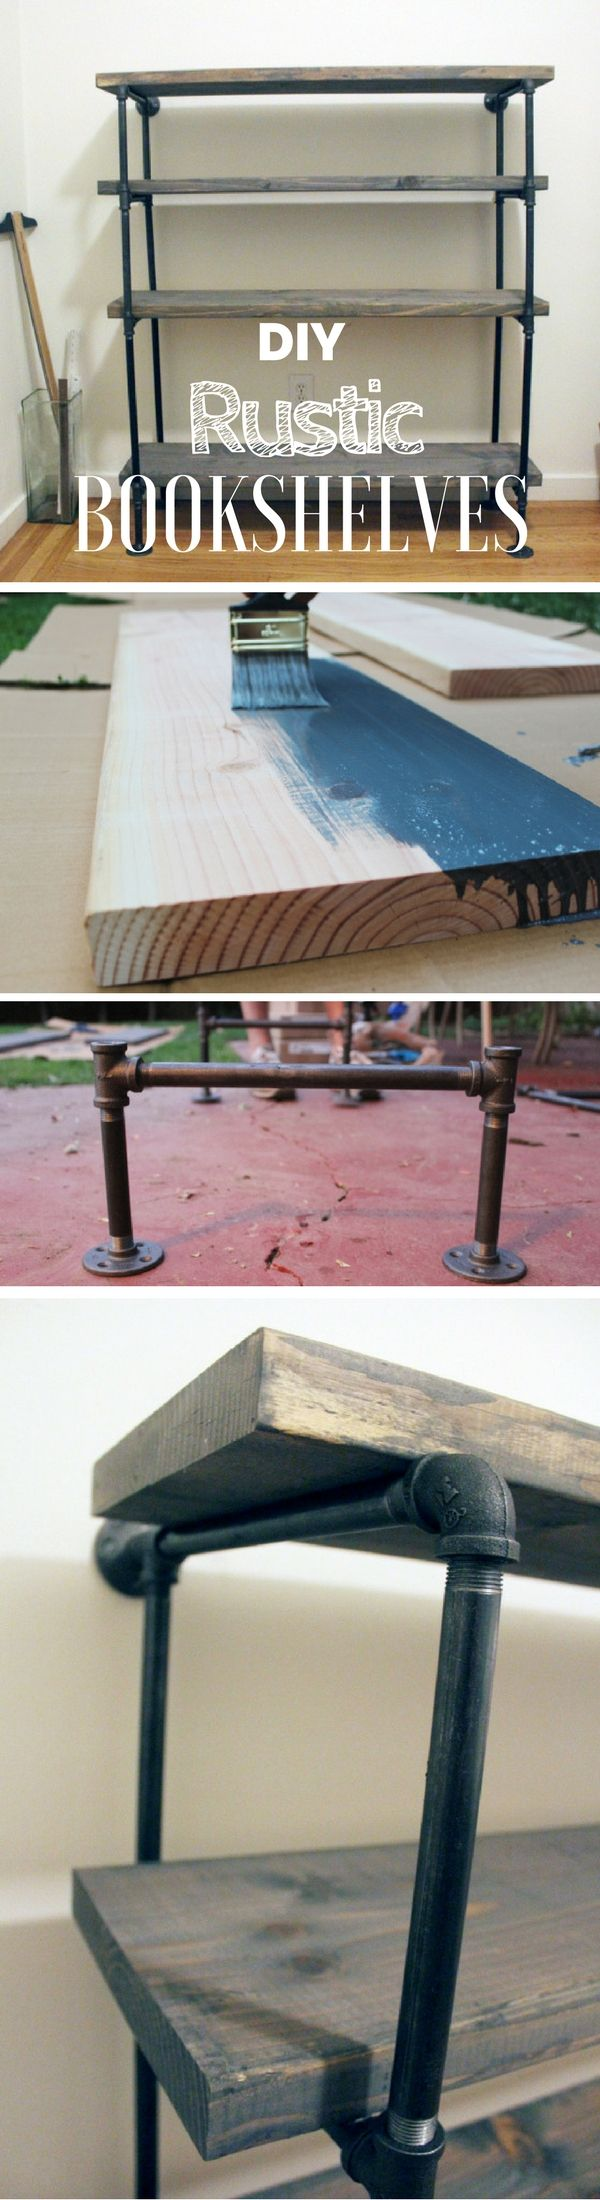 Check out how to build these DIY industrial rustic shelves at home @istandarddesign